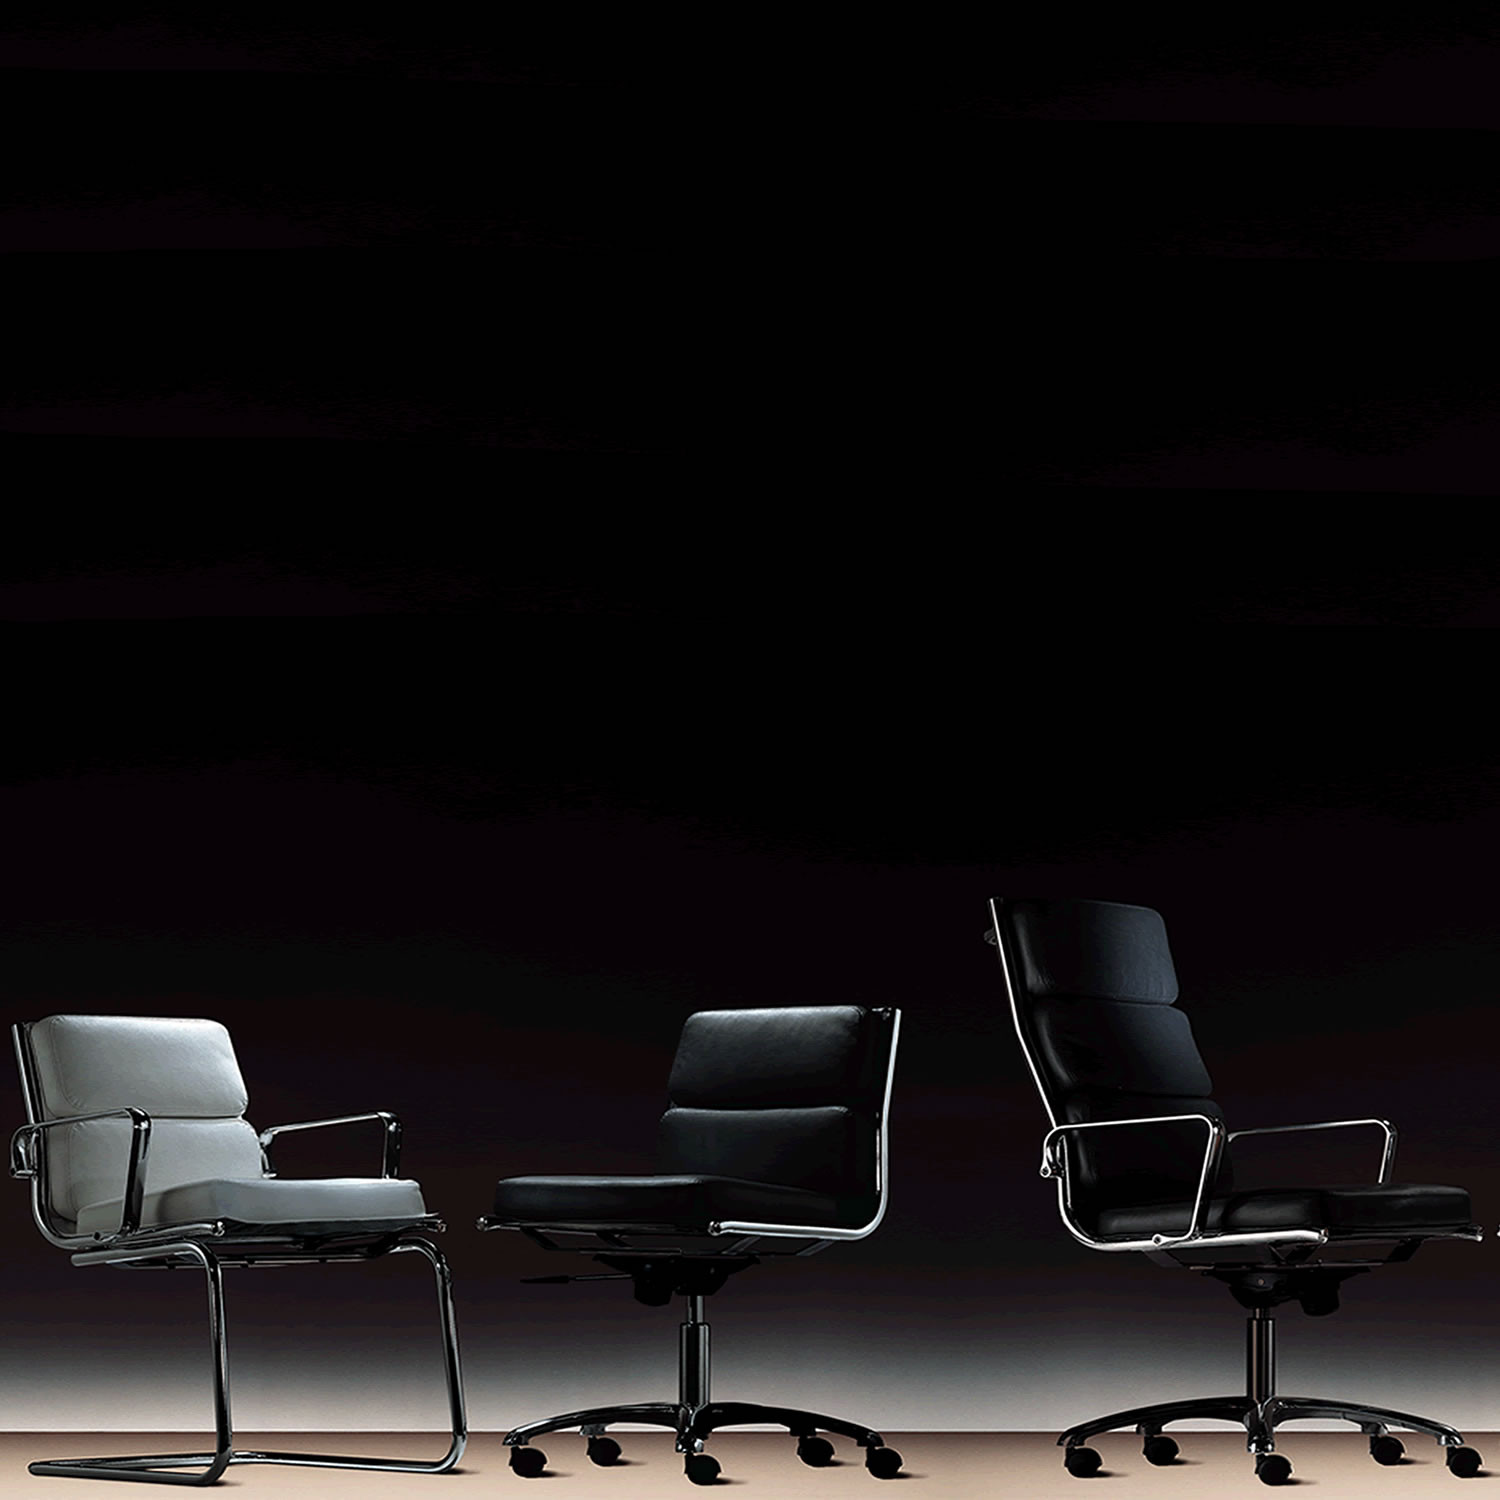 Light Seating Range is available with medium and high backrest